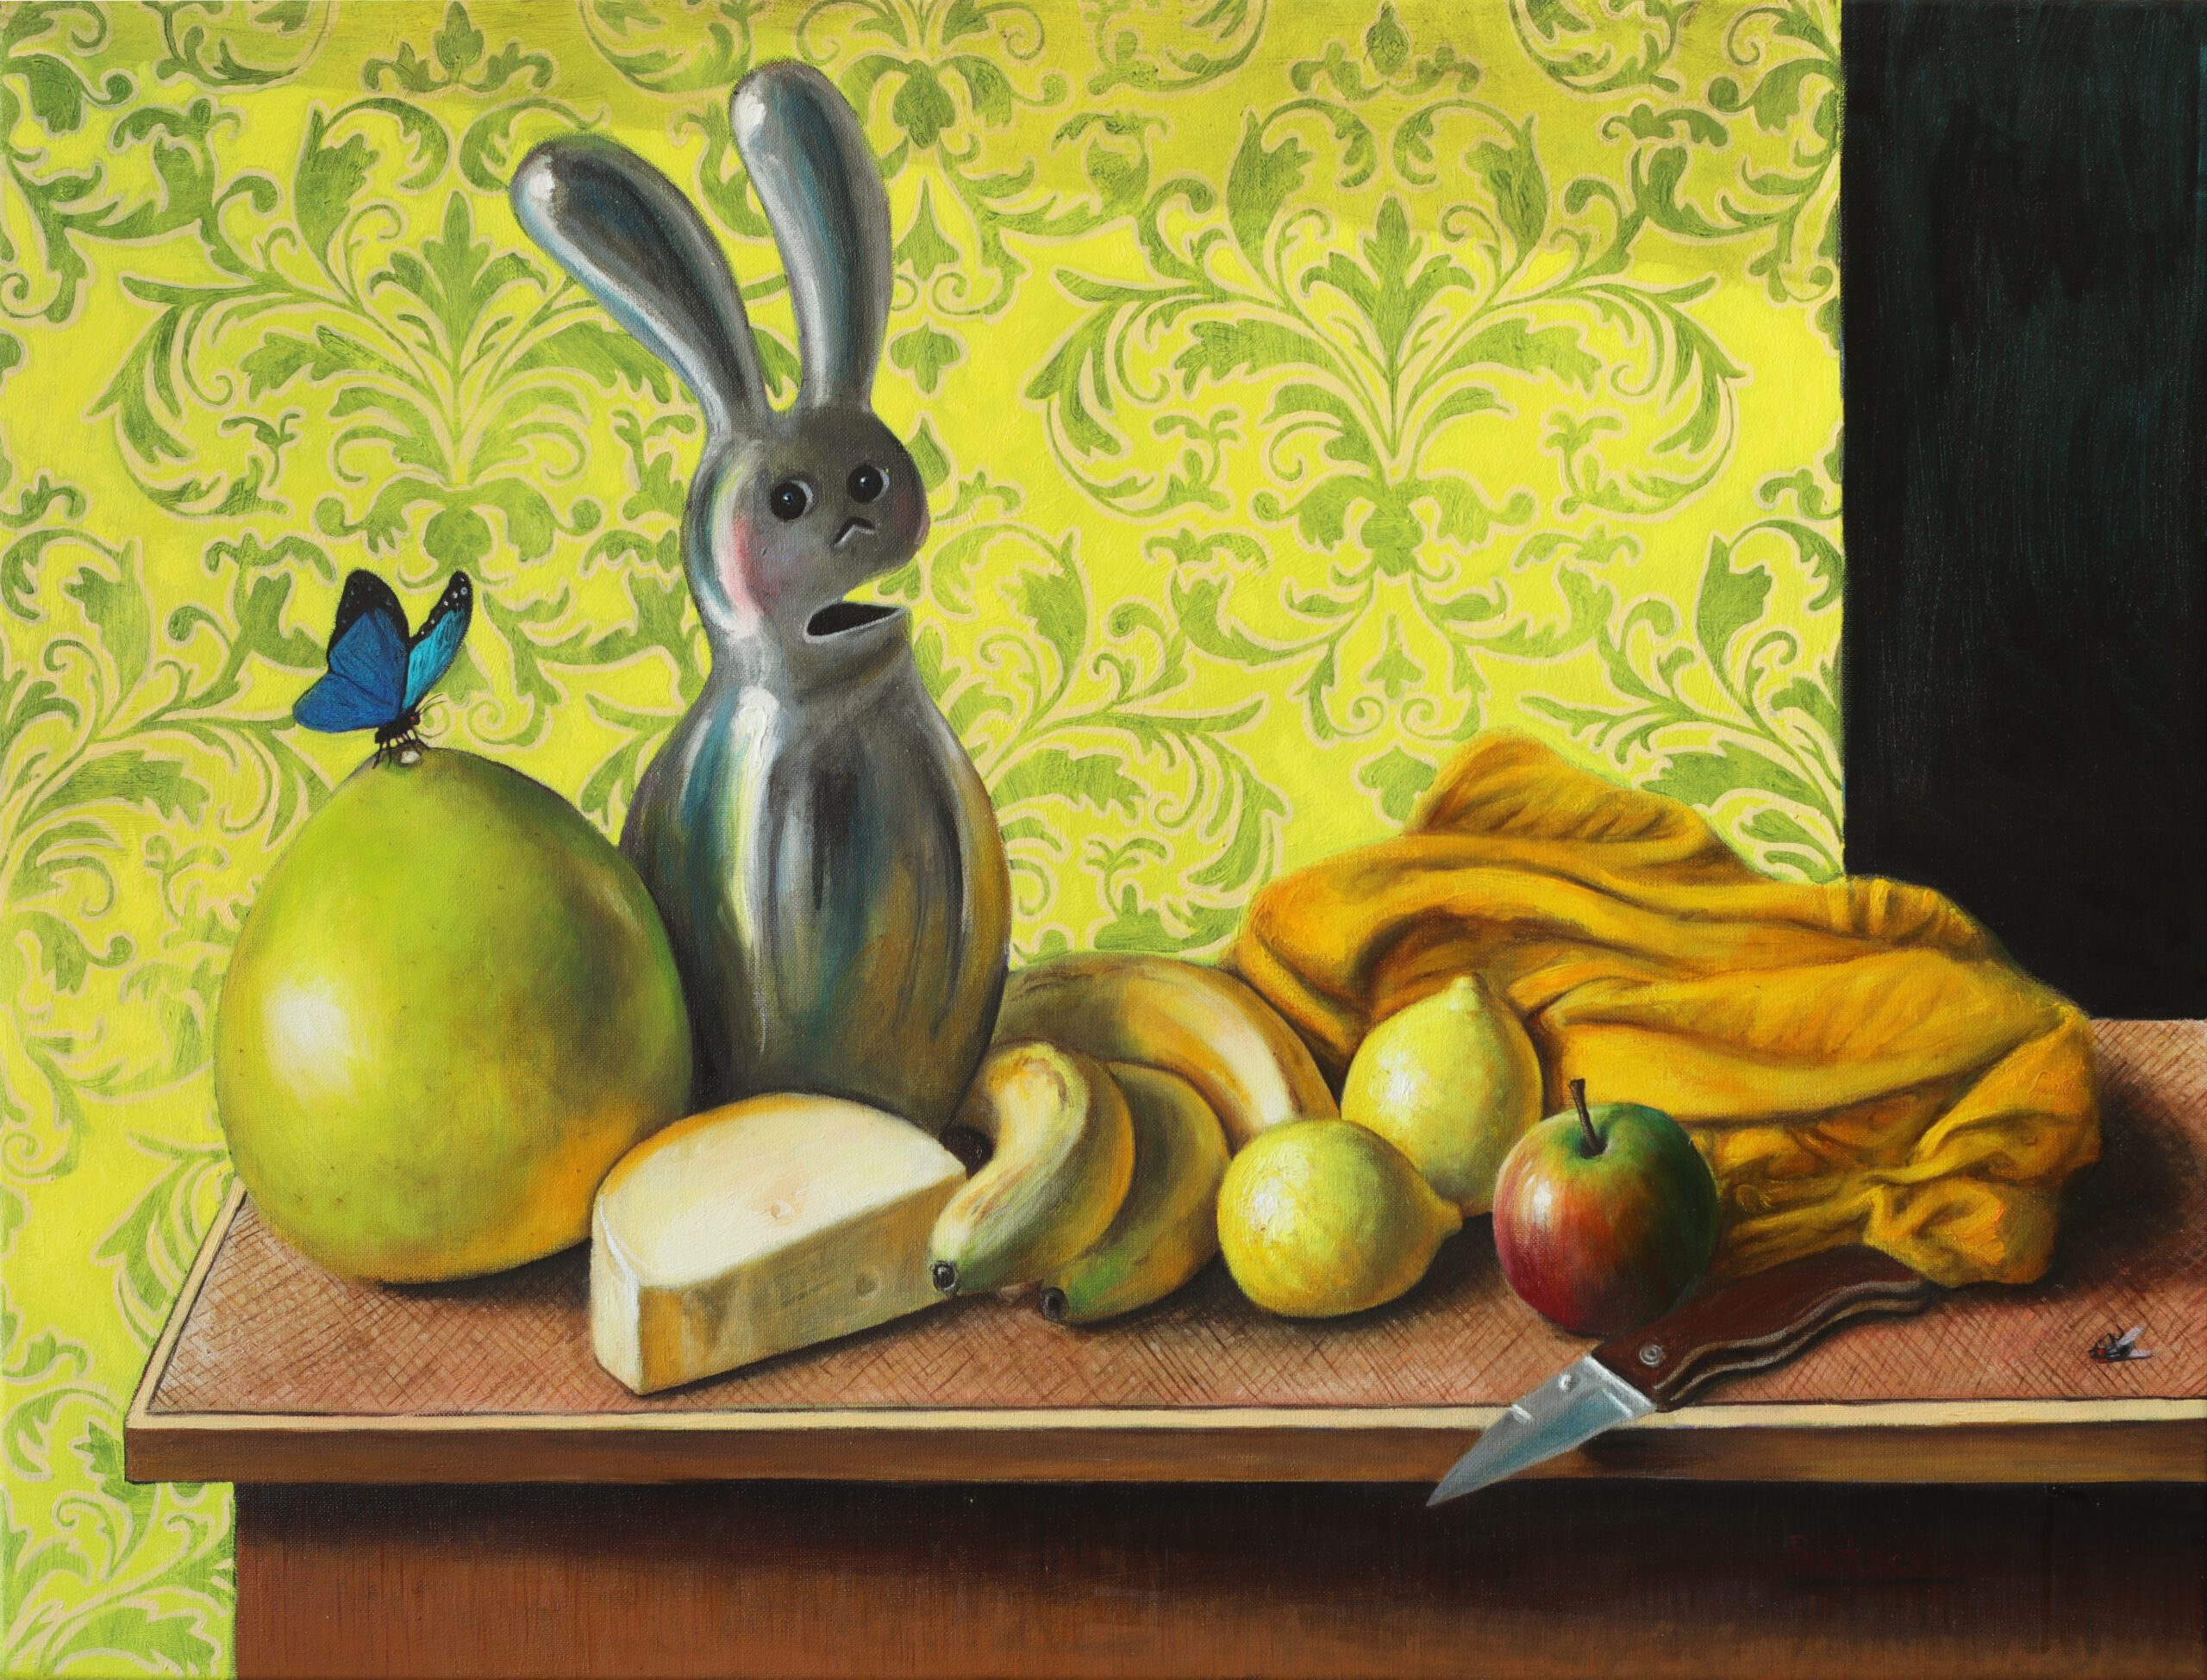 2020 Oil on canvas 23.6 x  31.9 inches (60 x 81 cm)   - Marc Straus Gallery